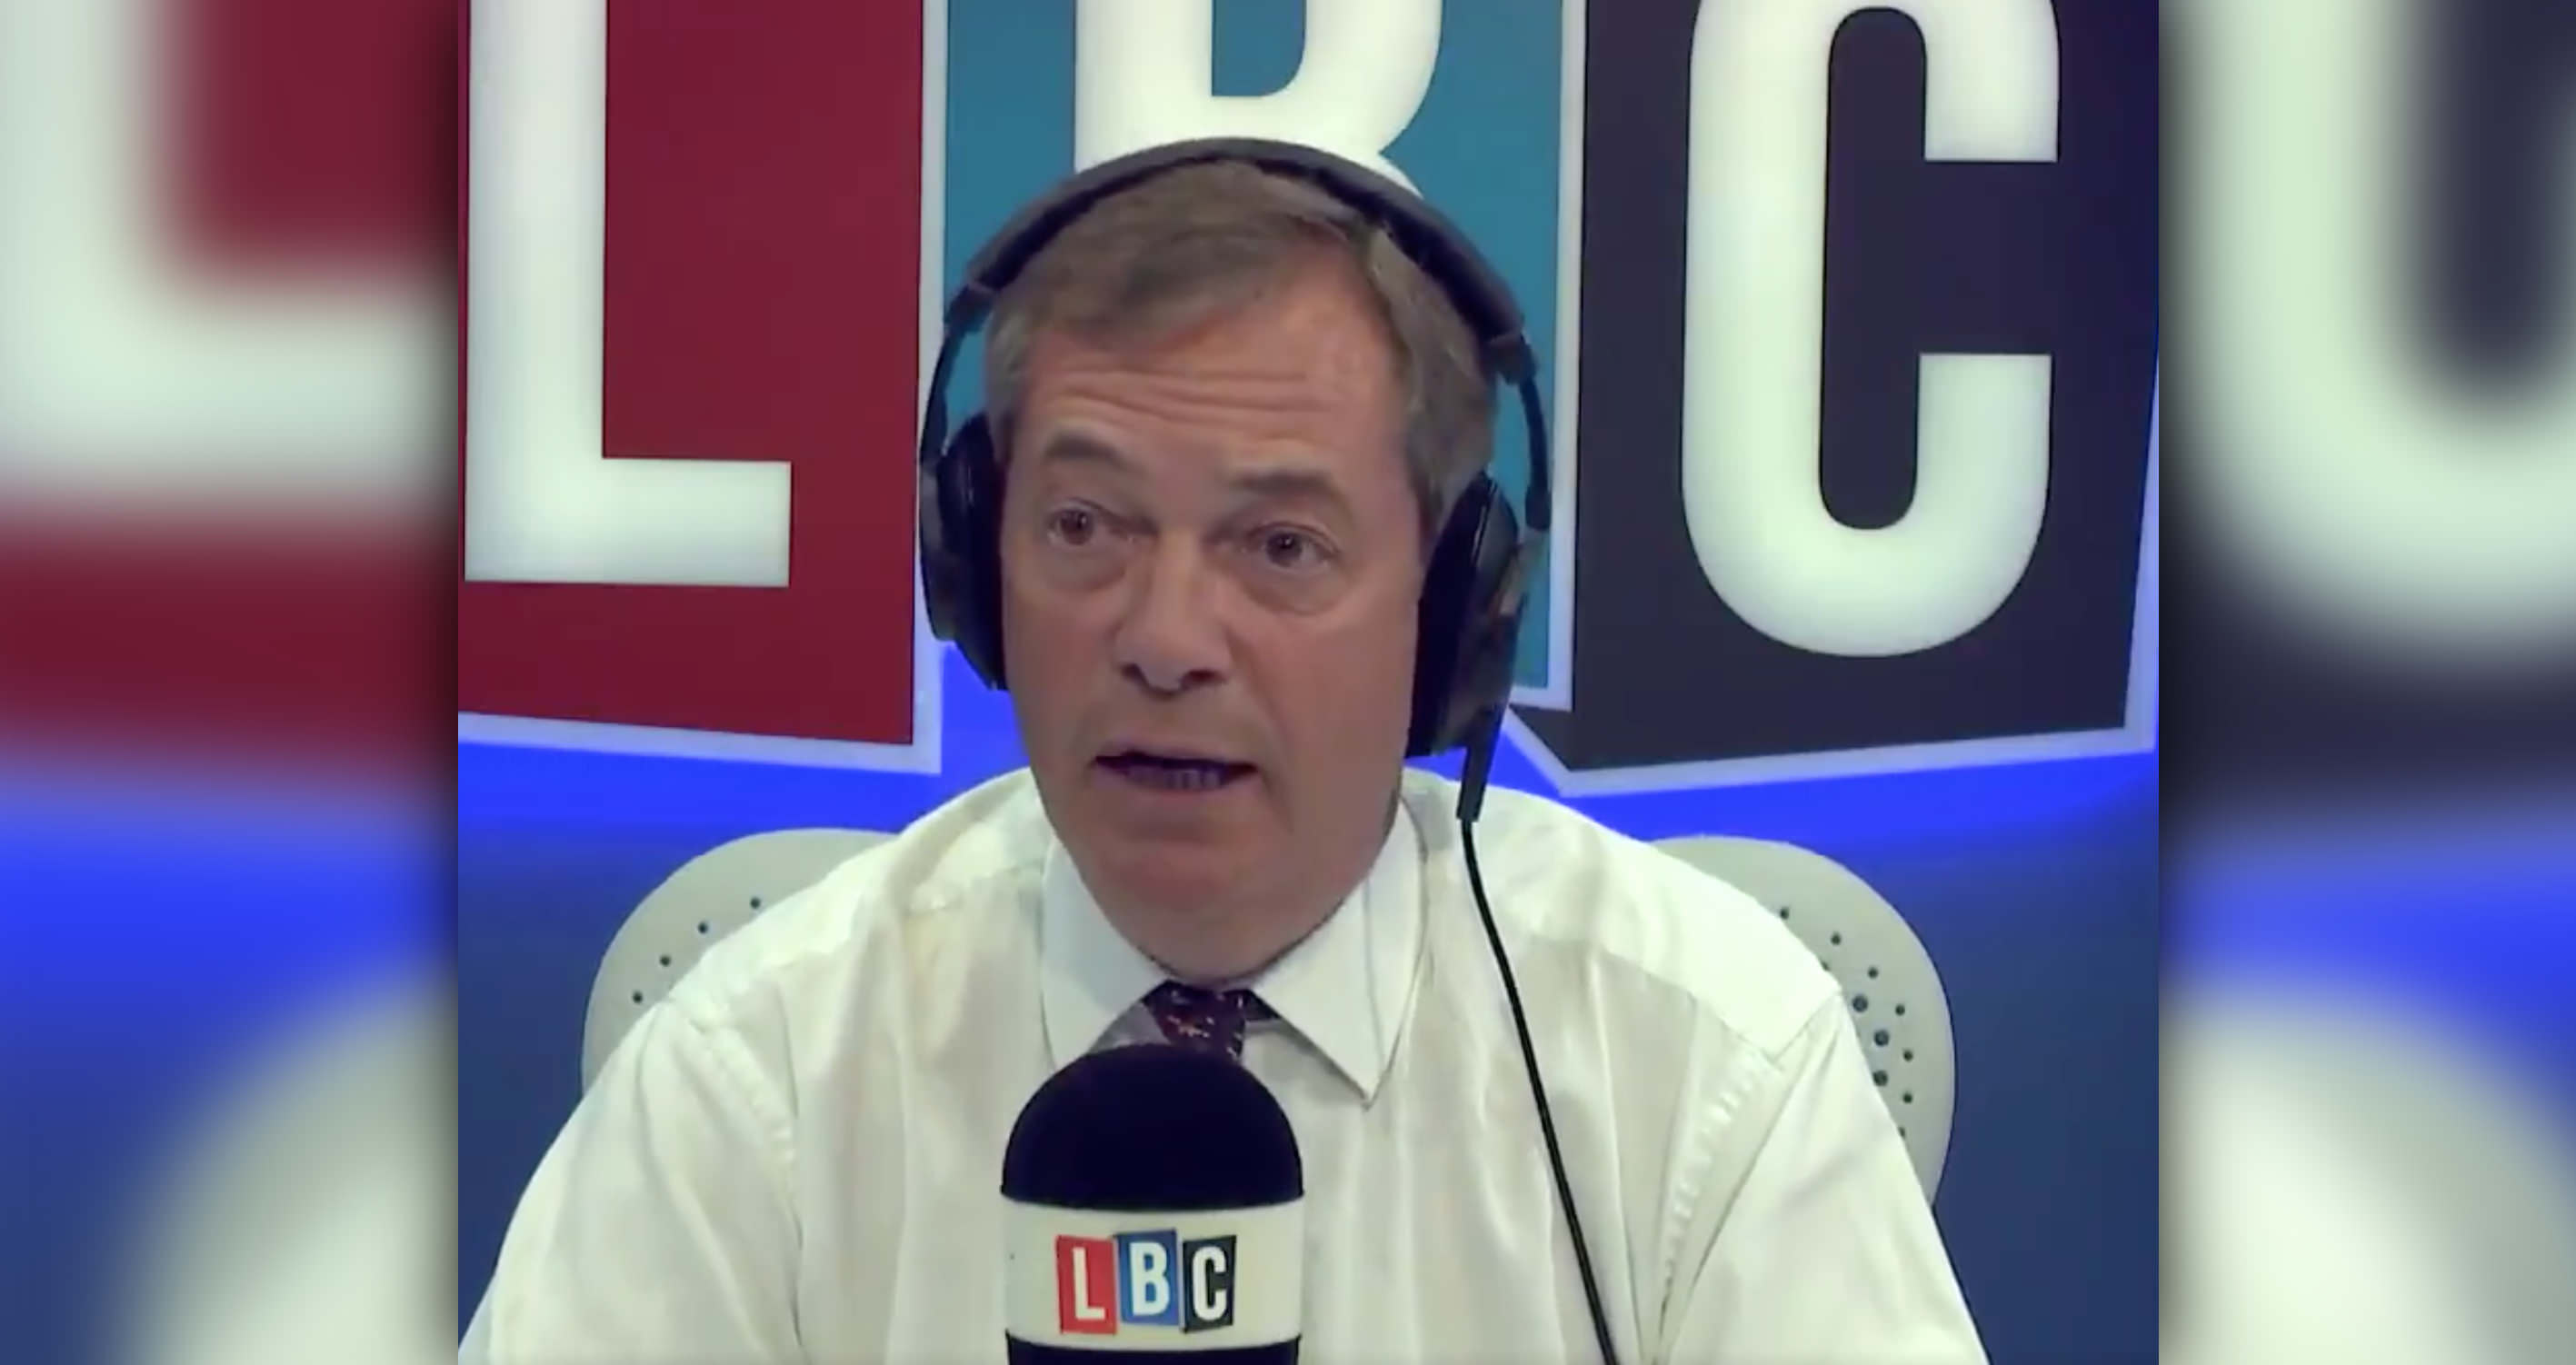 FARAGE: Left-Wing Fascism Being Ignored By Many for 'Political Gain' (VIDEO)